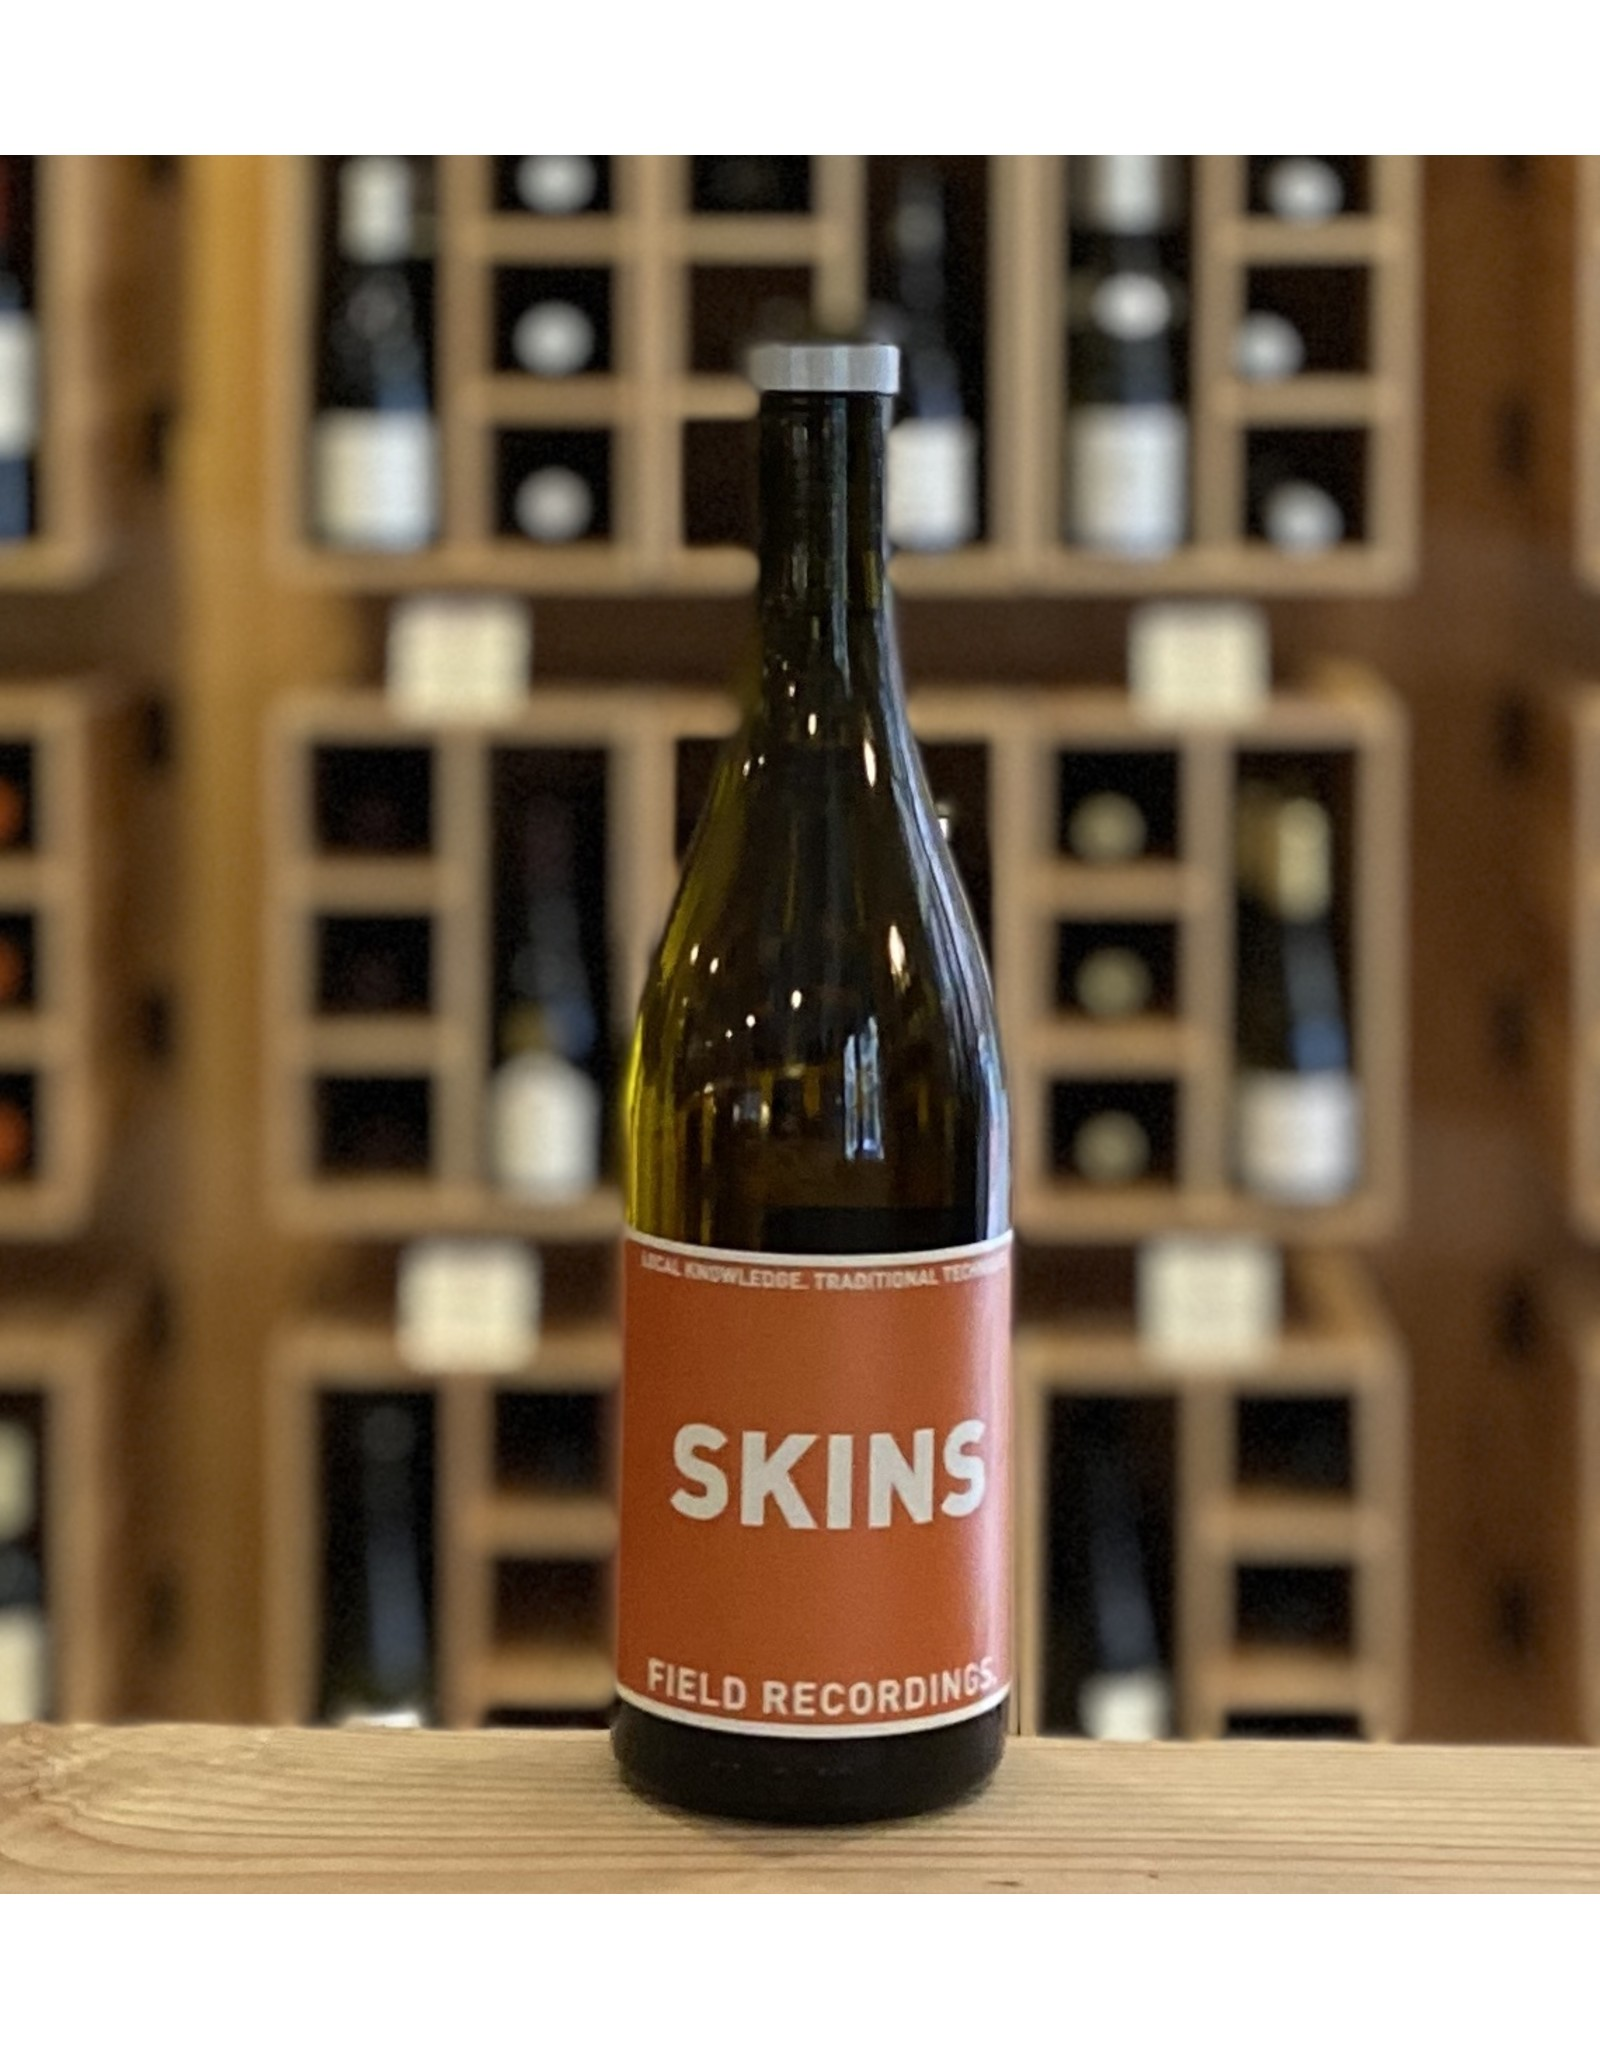 California Field Recordings ''Skins'' White Blend 2019 - Central Coast, CA